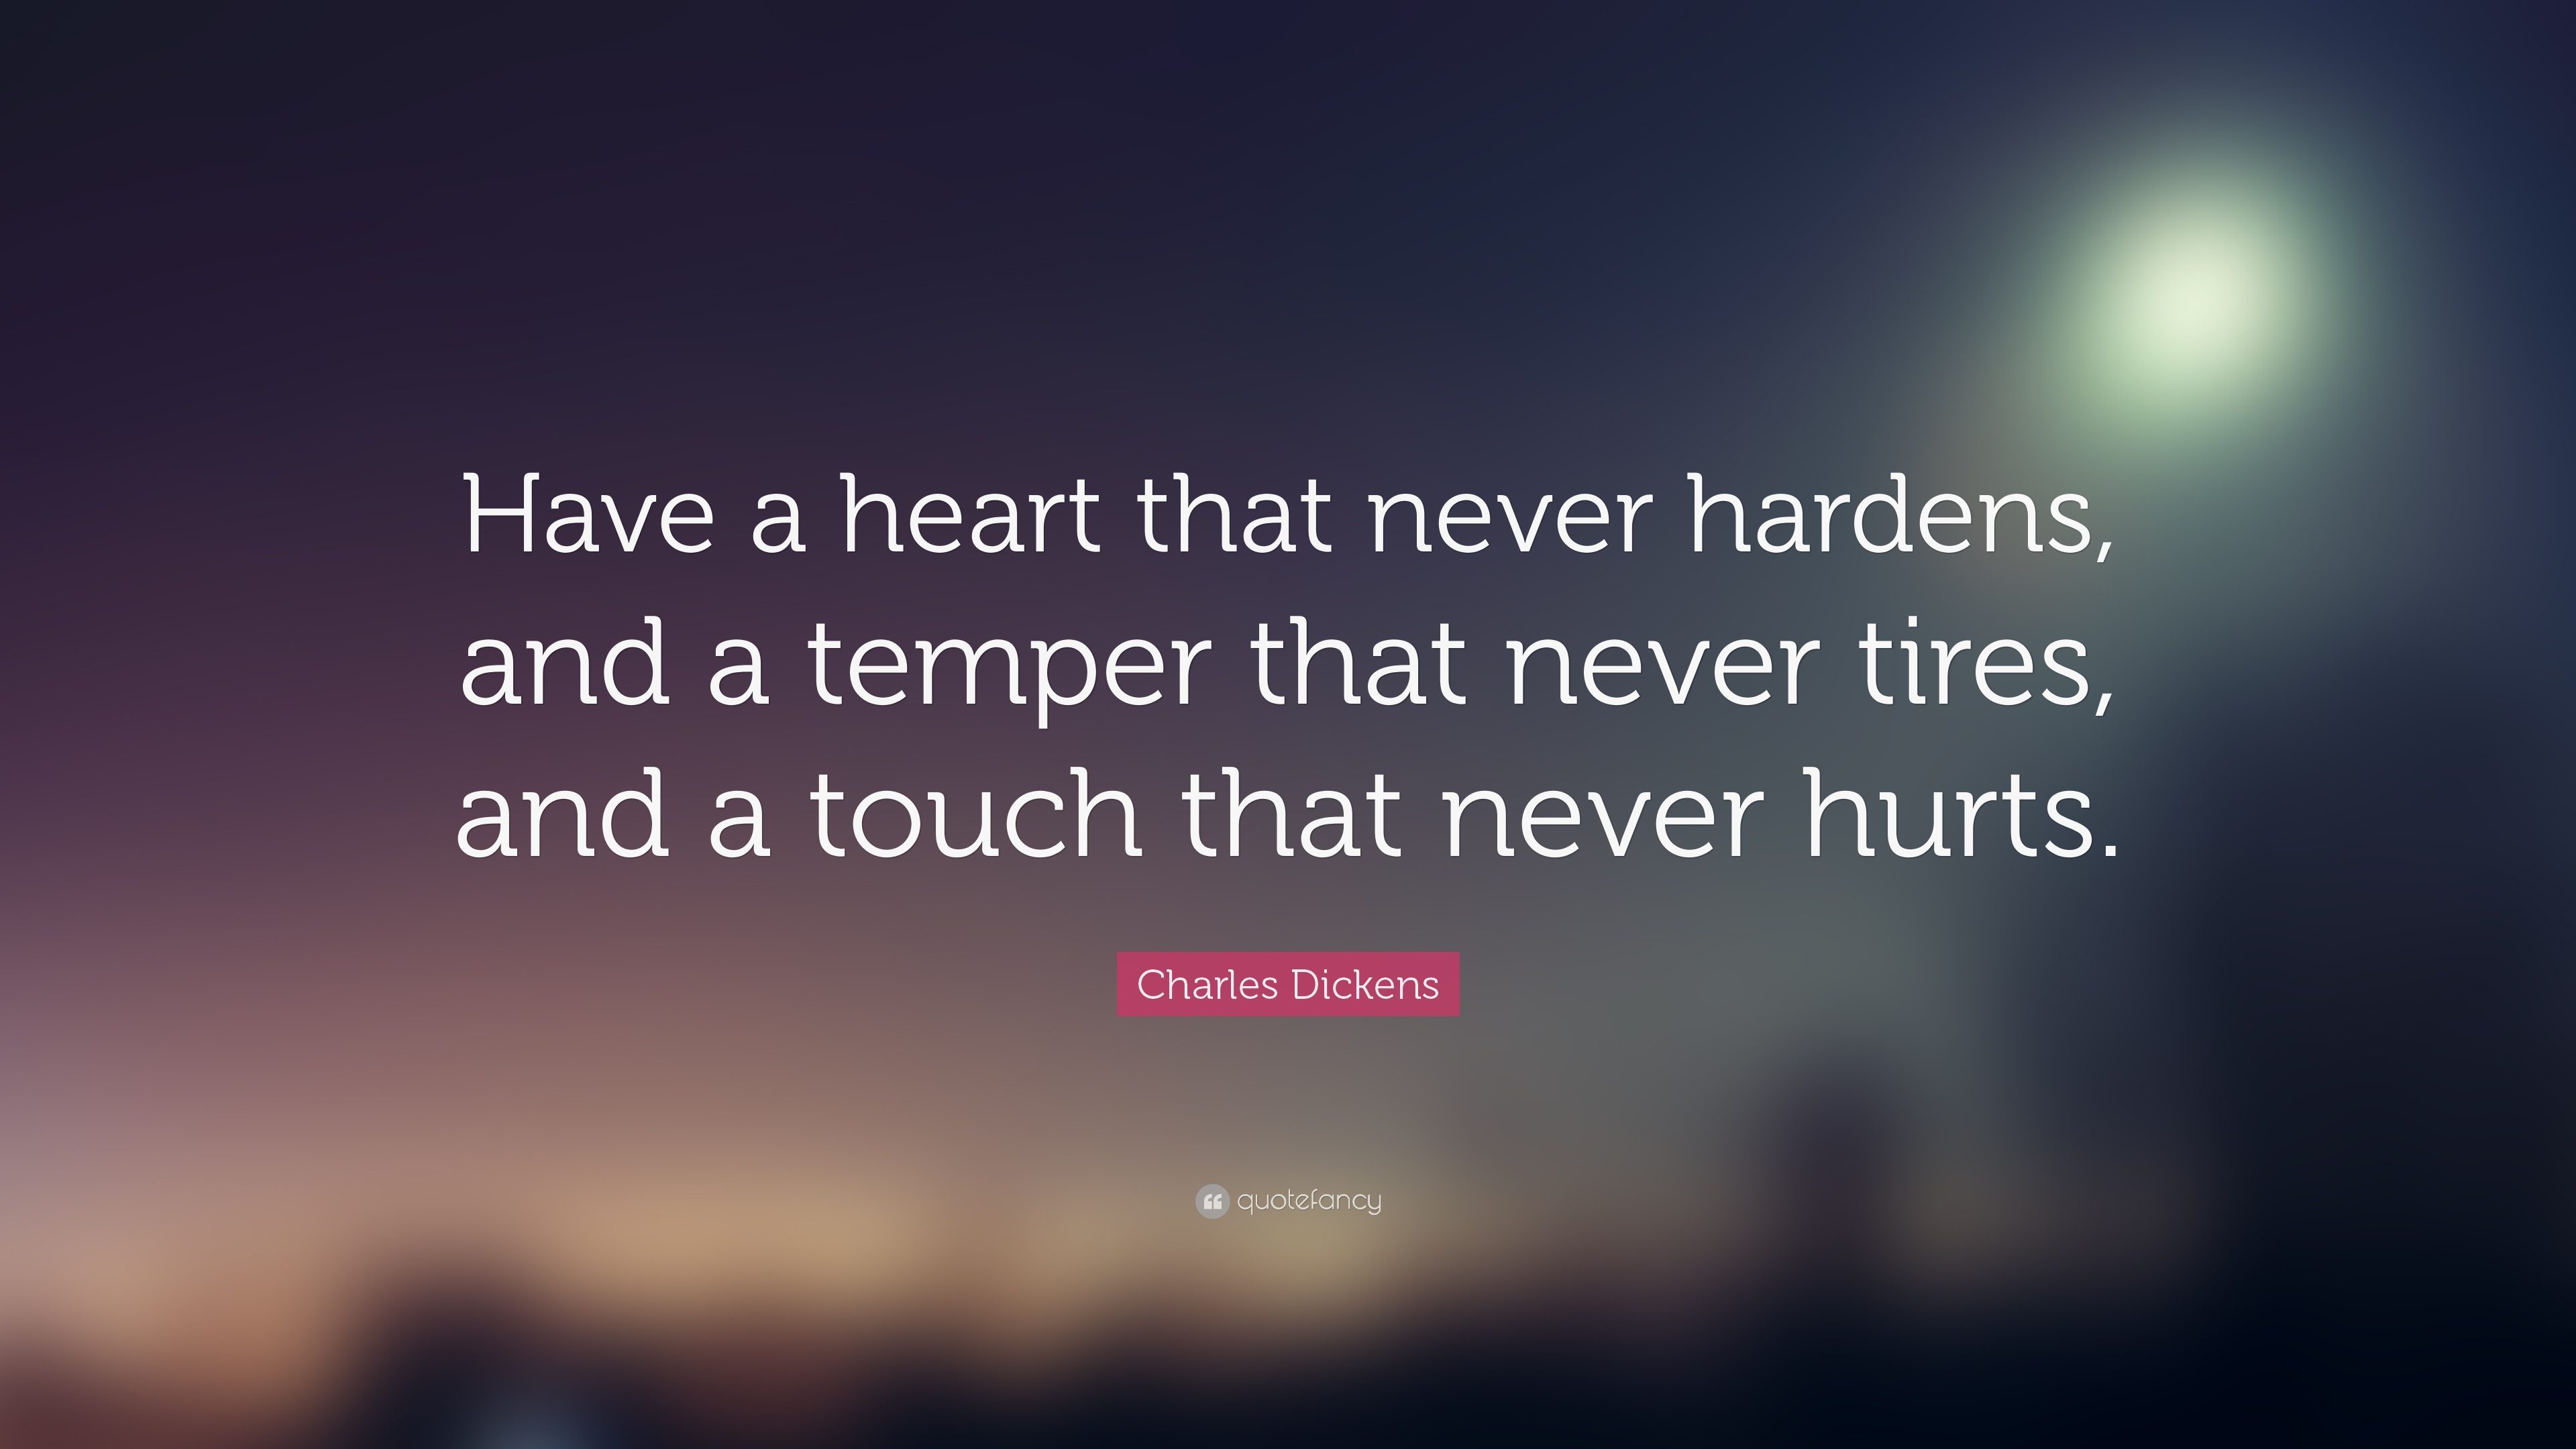 William Shakespeare Love Quotes Wallpaper Charles Dickens Quote Have A Heart That Never Hardens